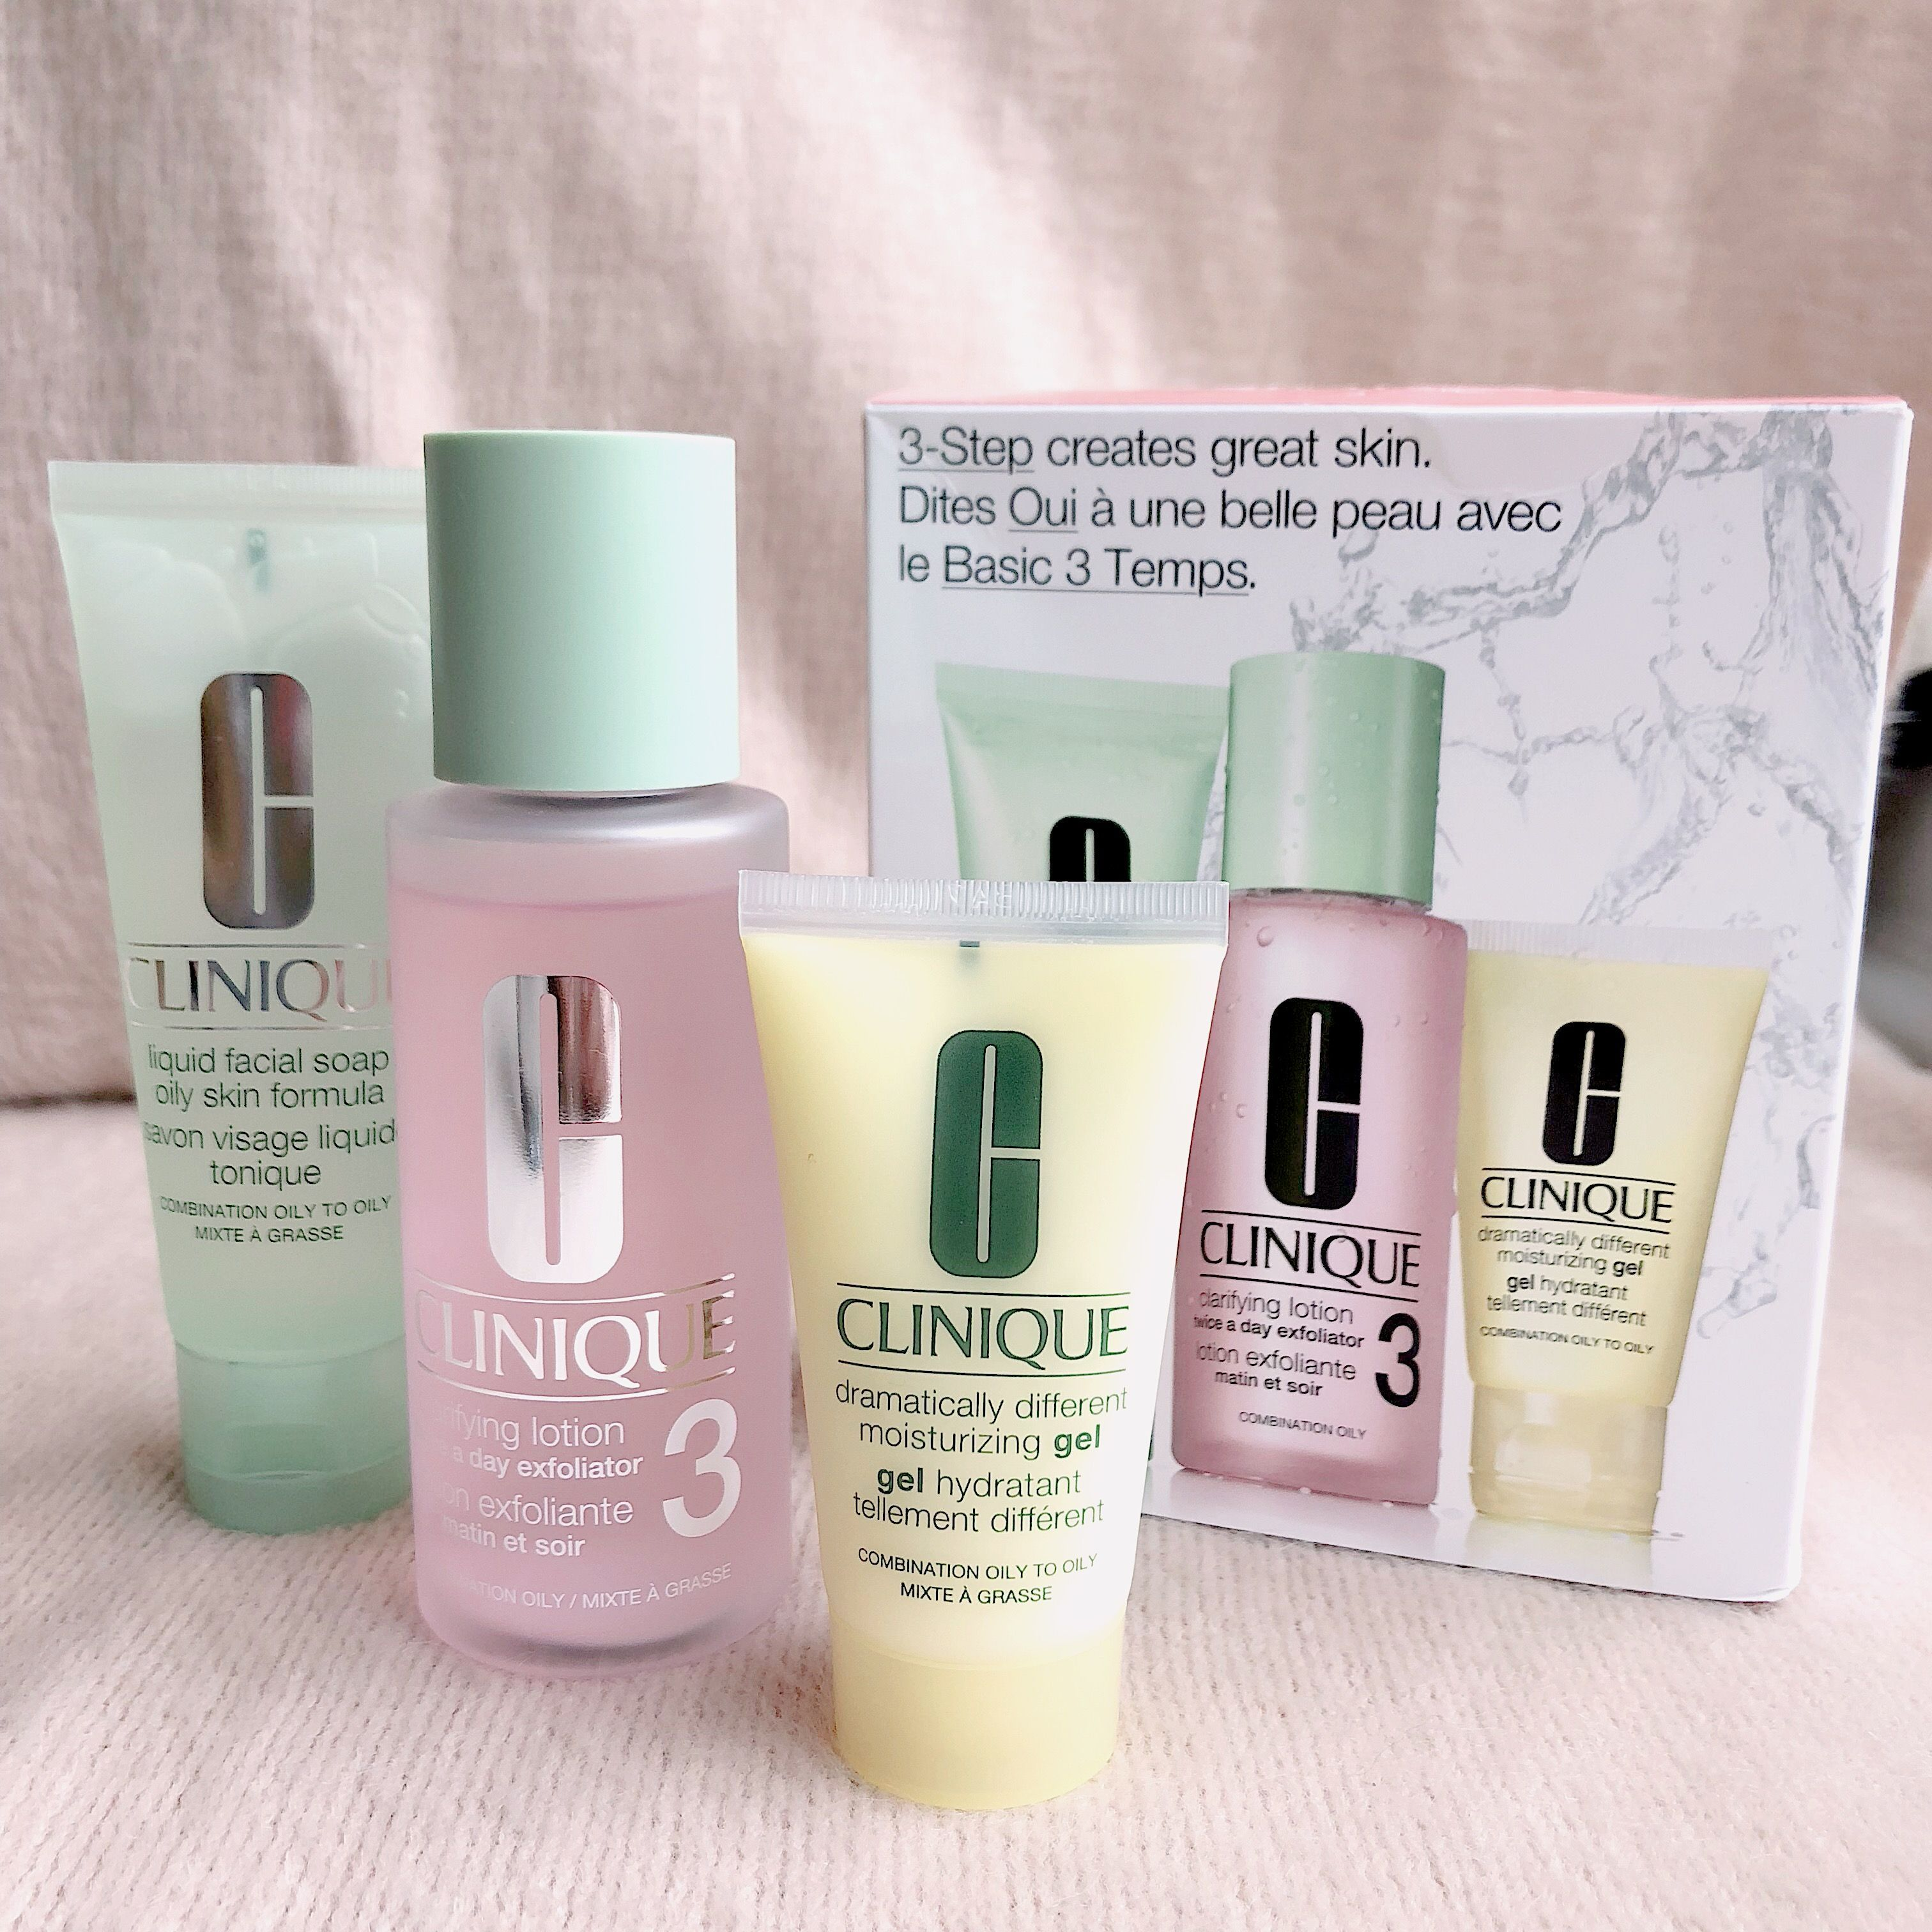 Pin By Joaquinrodriguez On Me Time Skin Care In 2020 Clinique Skincare Routine Clinique Skincare Facial Cleanser